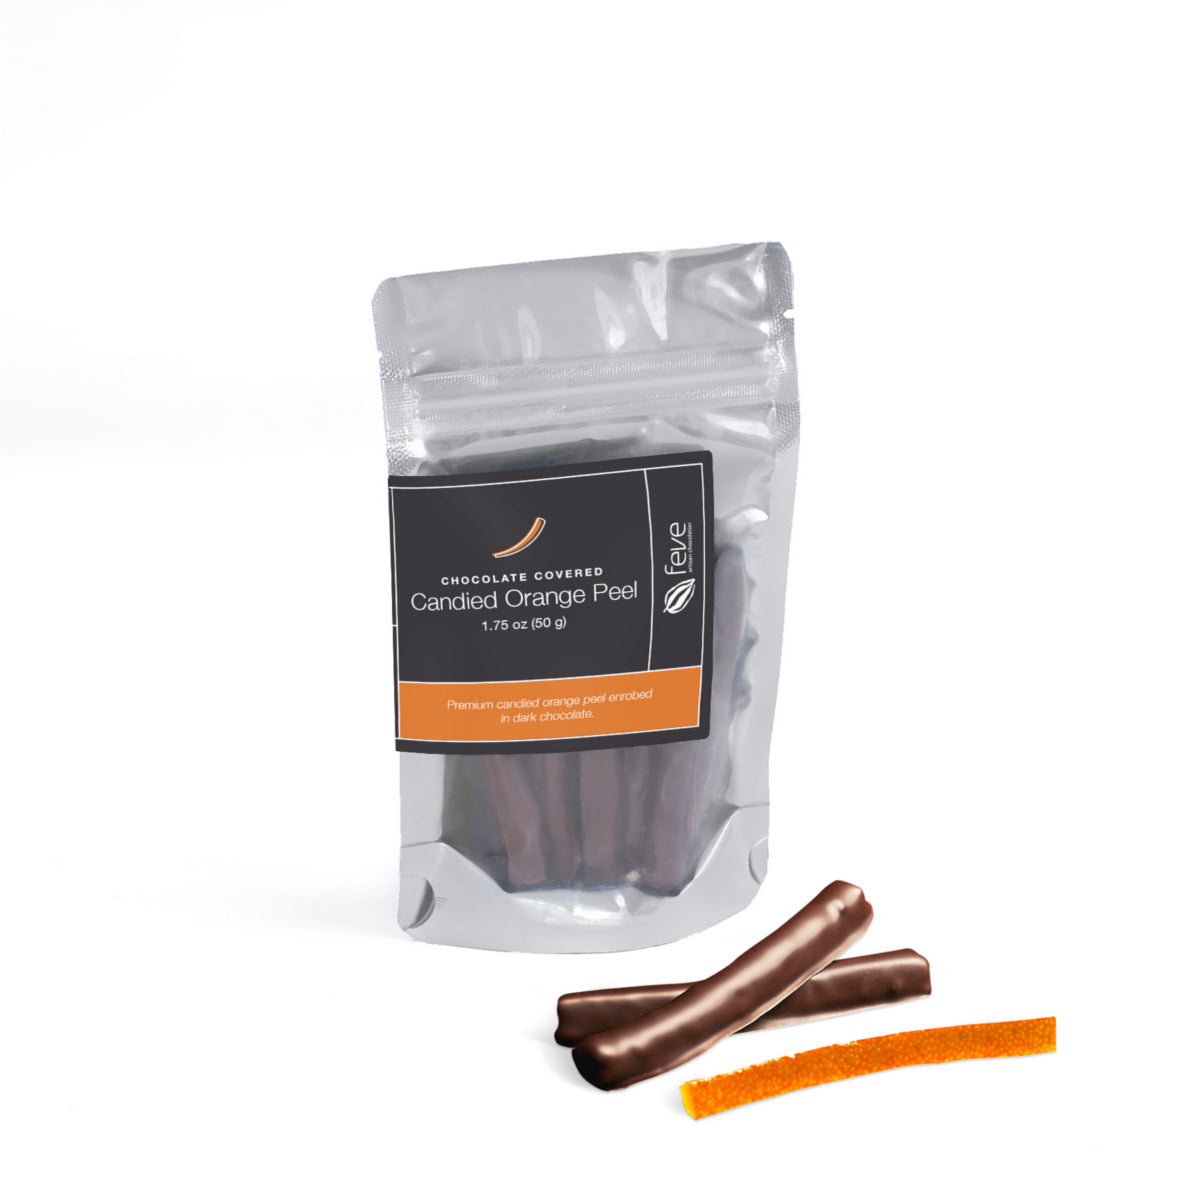 Feve Candied Orange Peel 1.75 oz